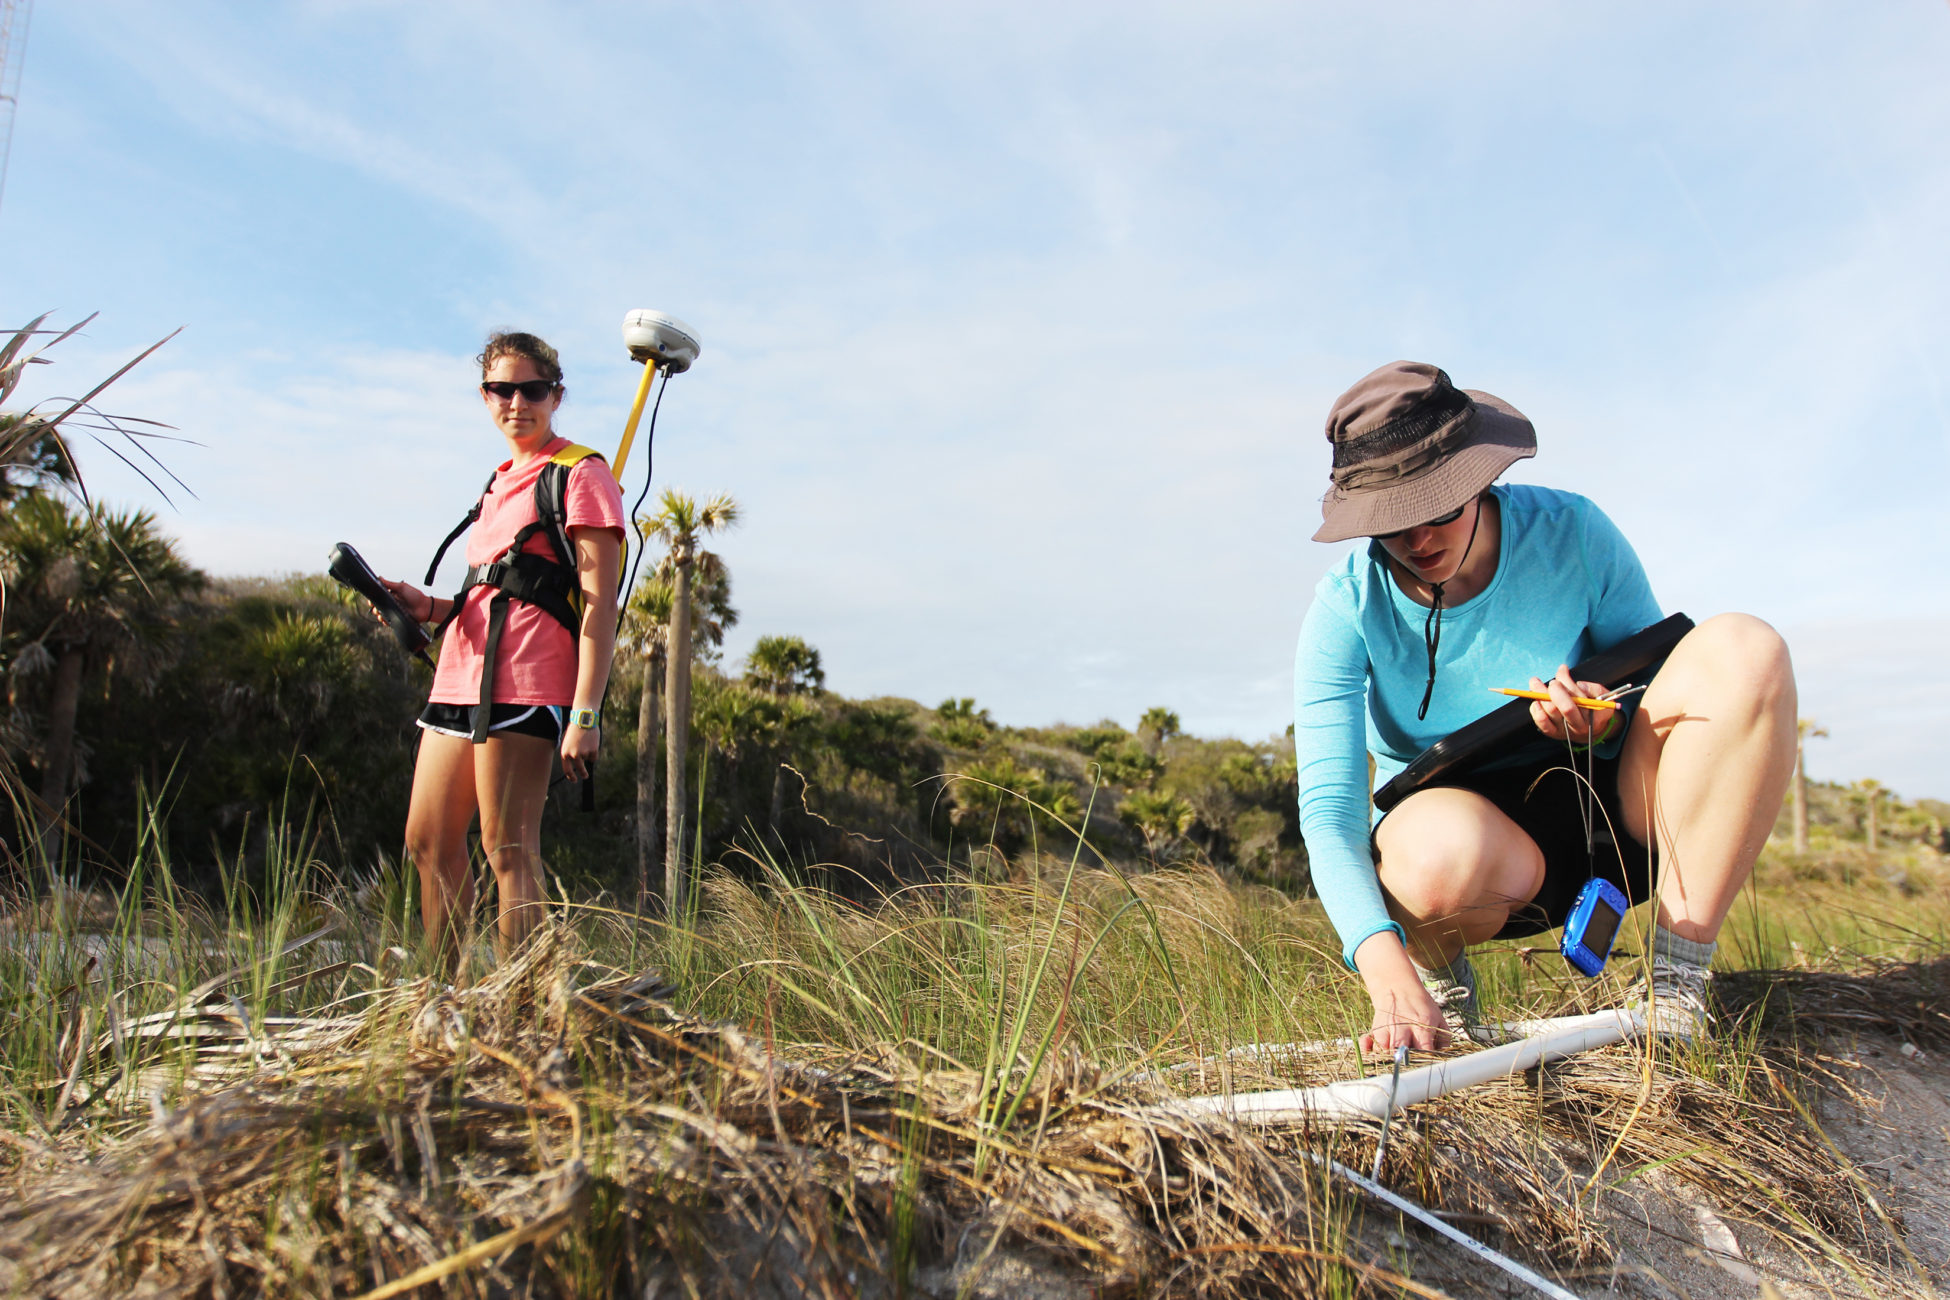 Elsemarie deVries measures the vegetation along her last transect while Atencio gathers the GPS points of each quadrat